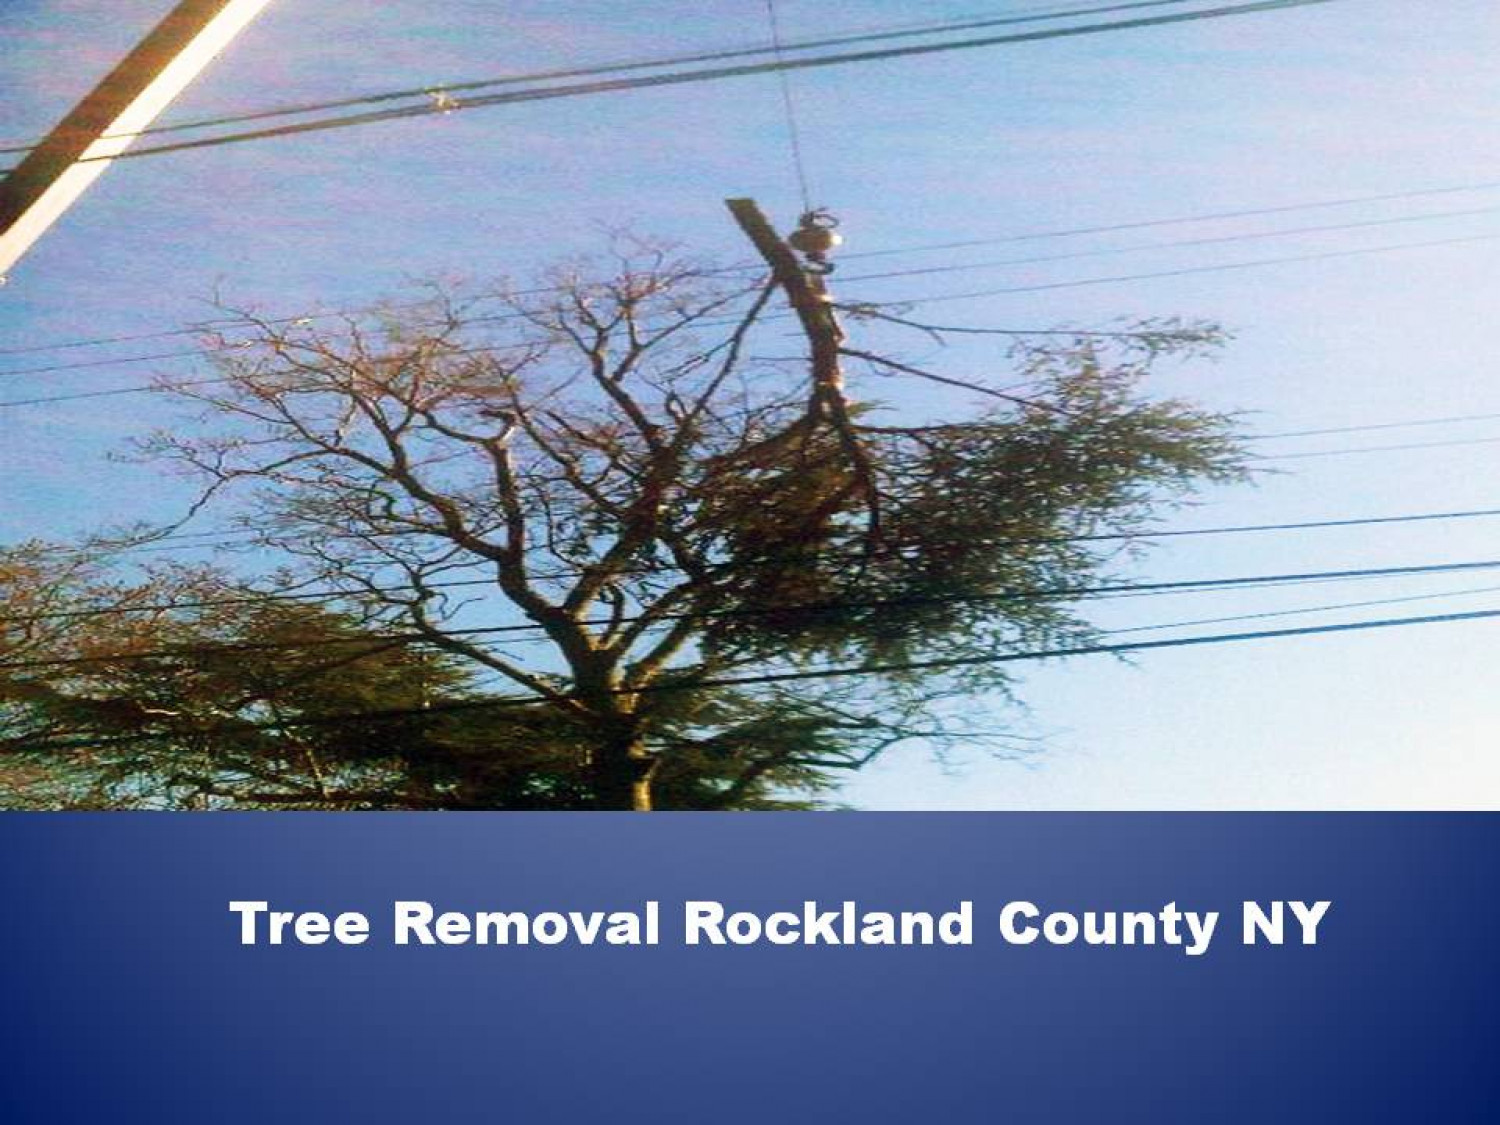 Tree Removal Rockland County NY Infographic